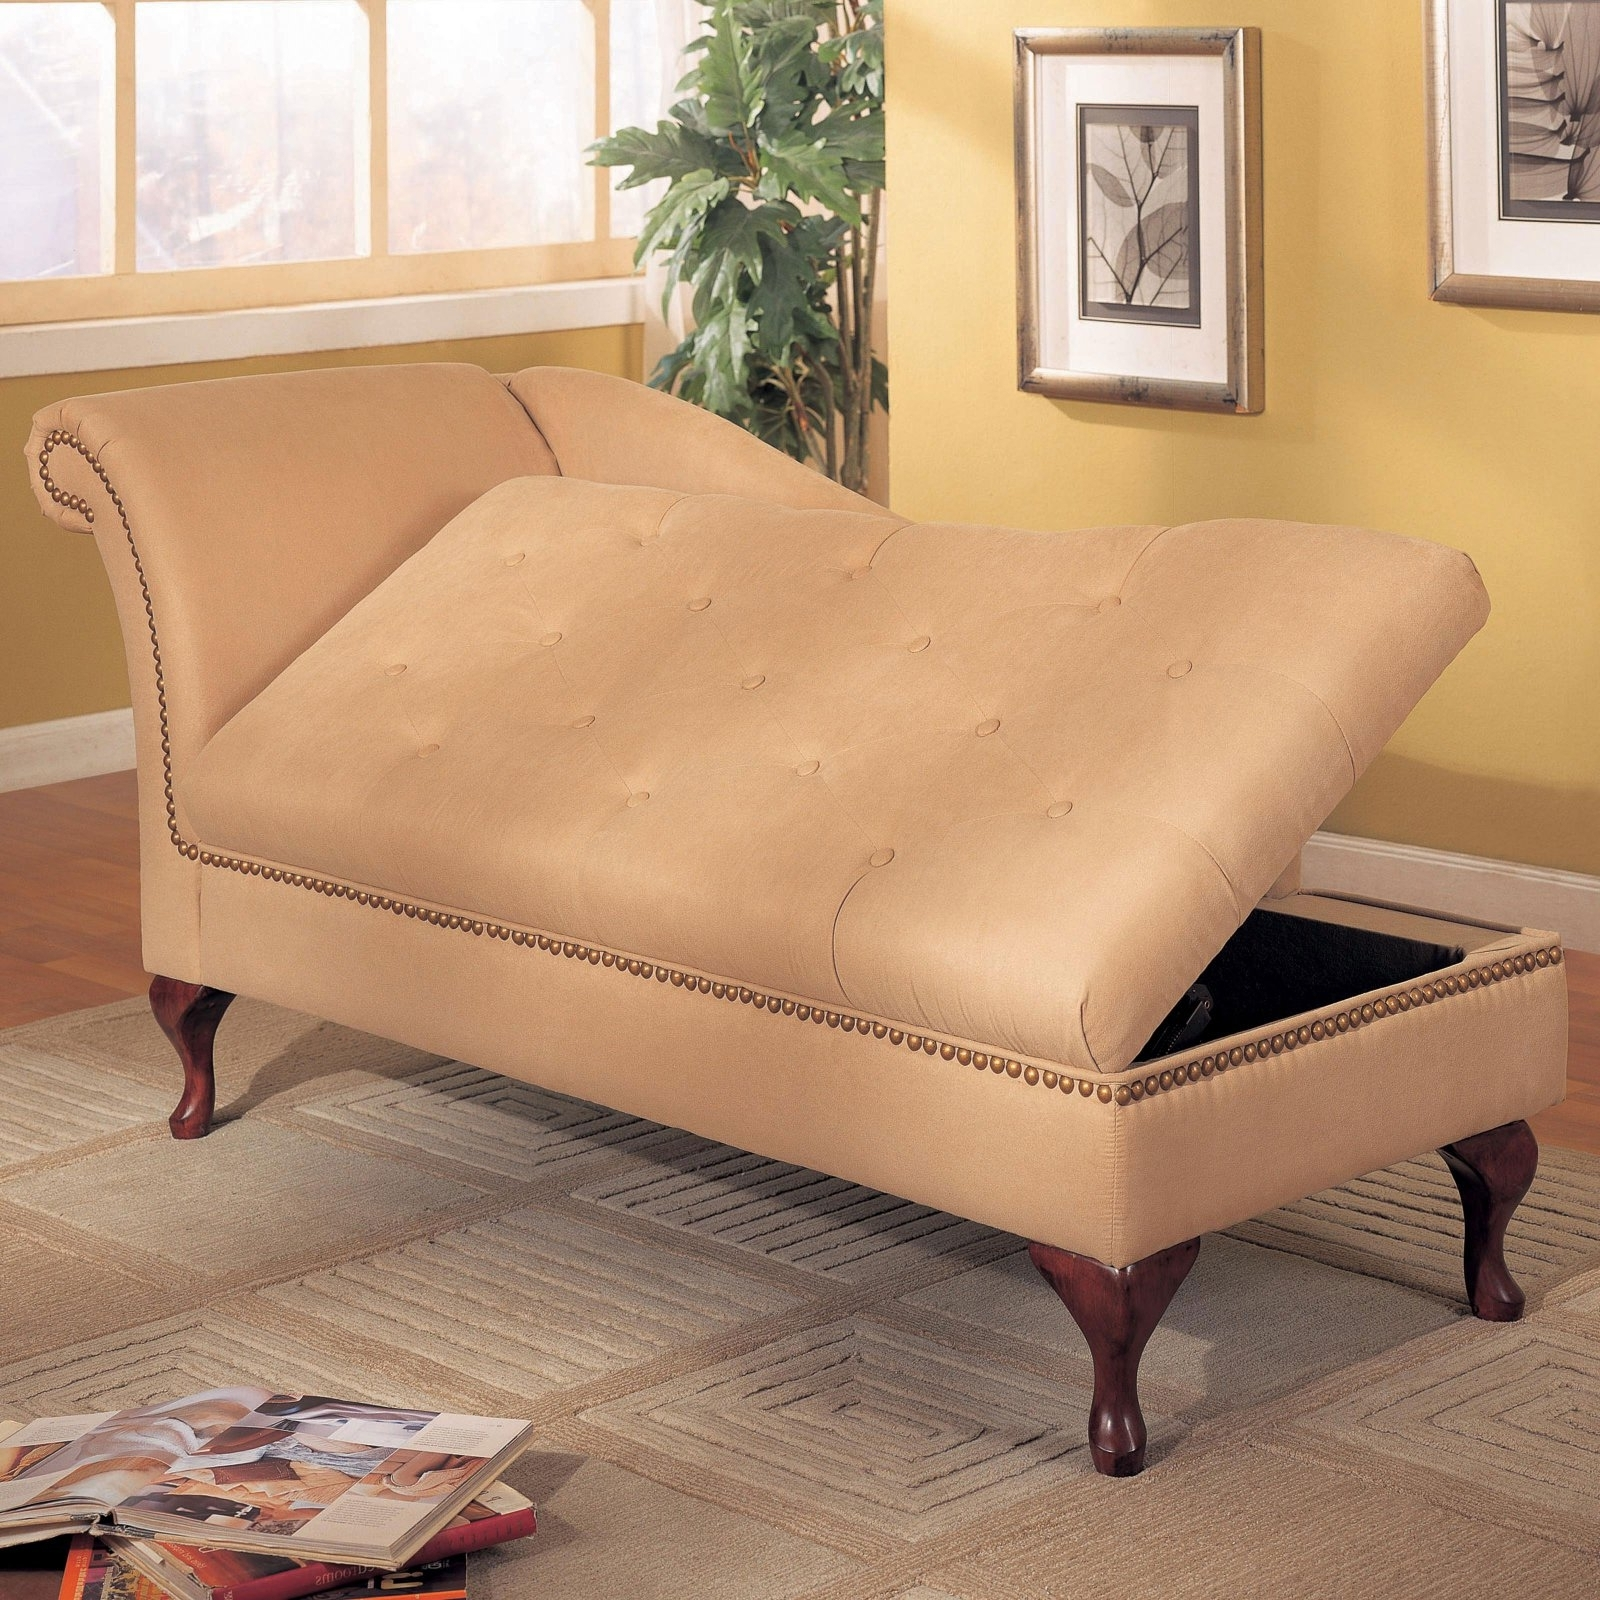 Widely Used Small Bedroom Chaise Lounge Chairs • Lounge Chairs Ideas Regarding Bedroom Chaise Lounges (View 9 of 15)